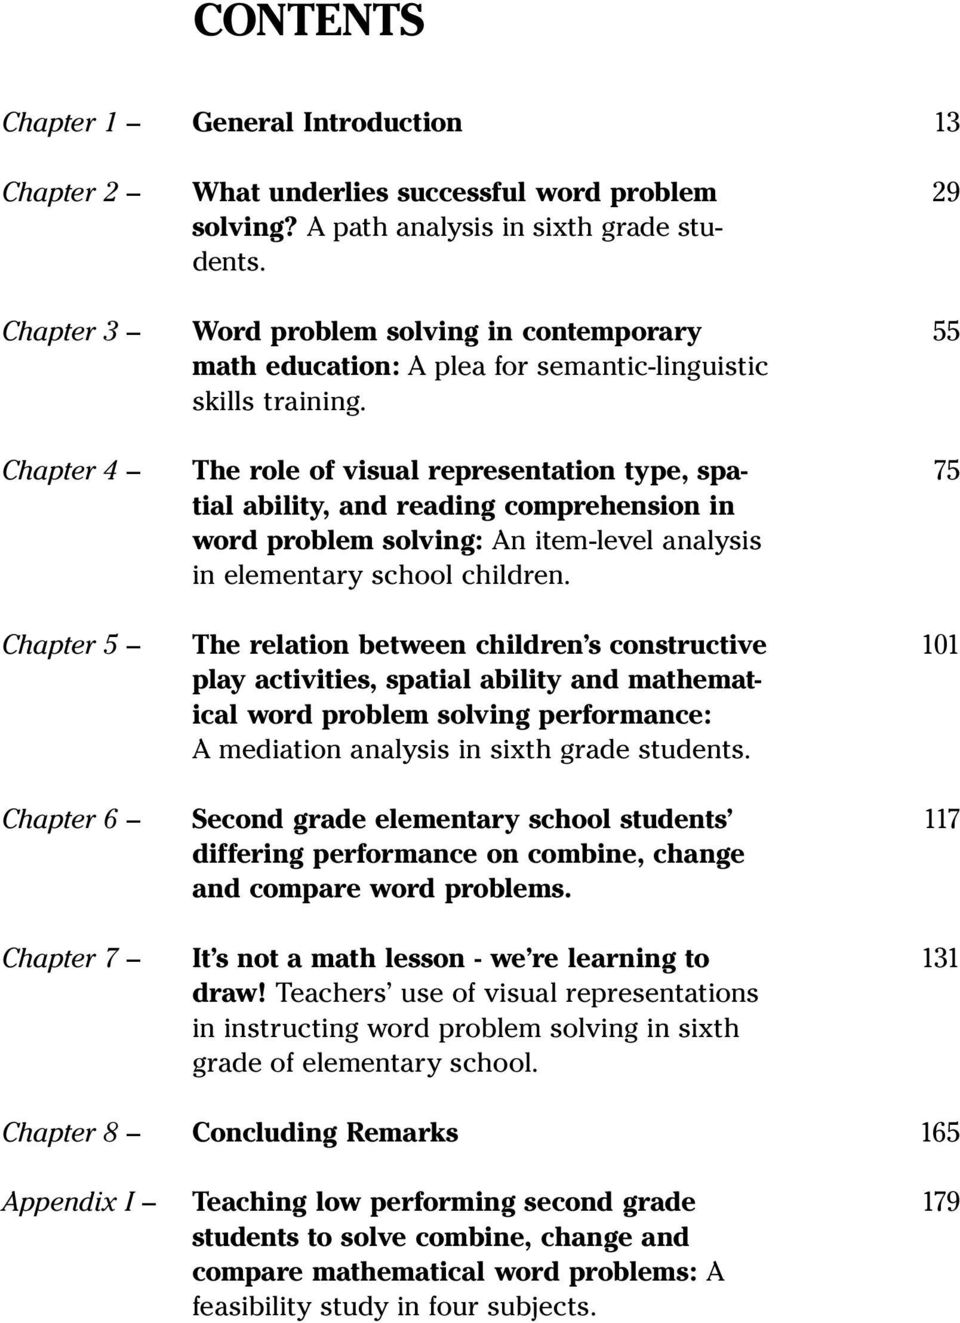 The role of visual representation type, spatial ability, and reading comprehension in word problem solving: An item-level analysis in elementary school children.